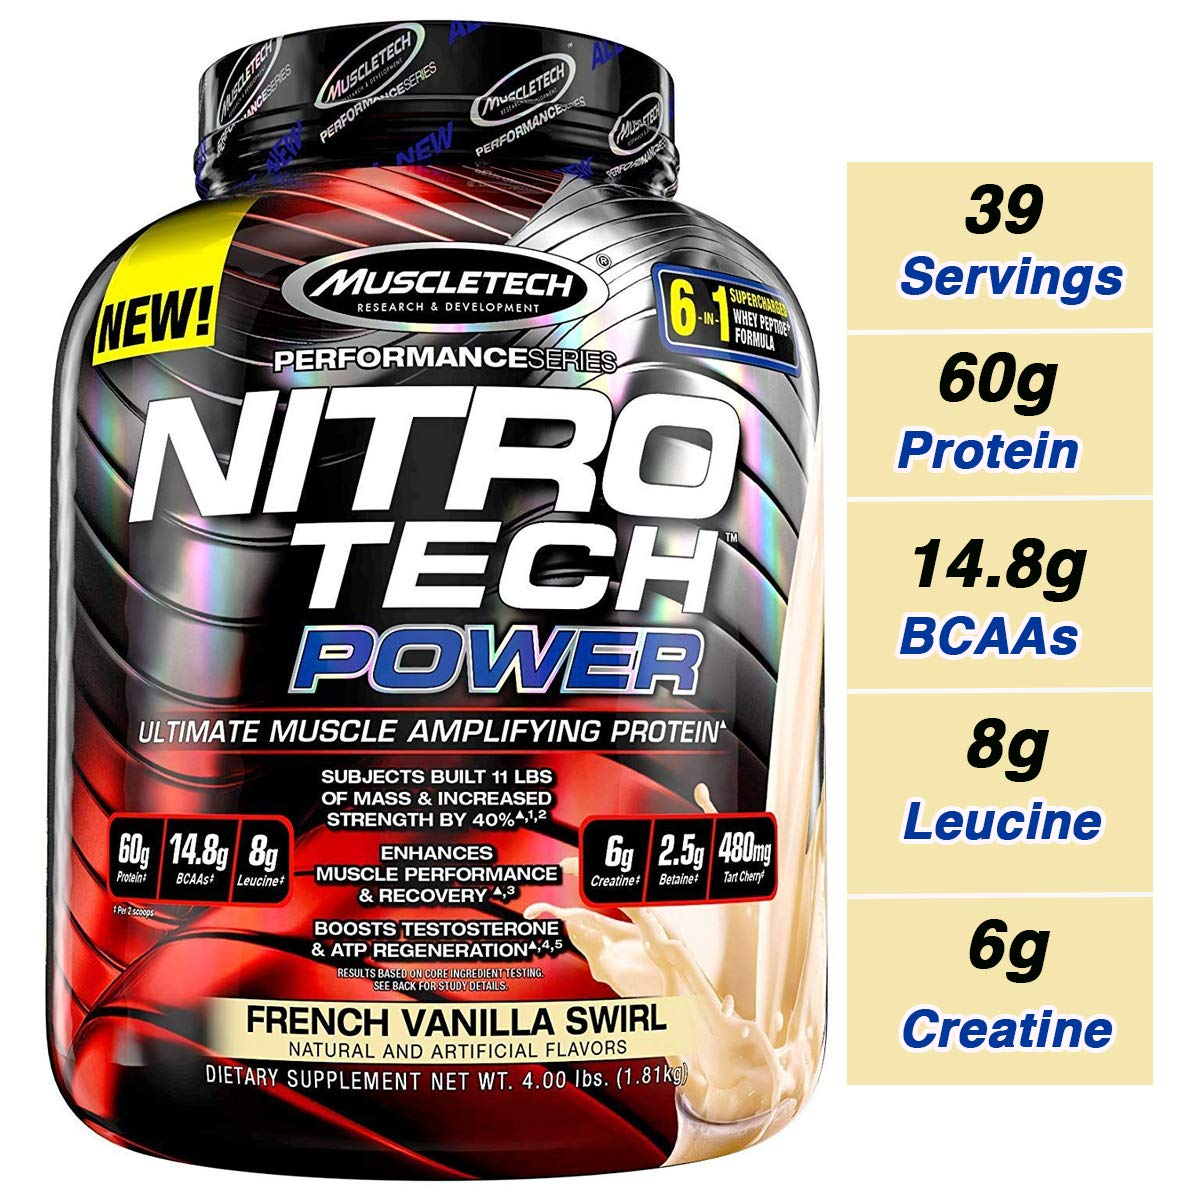 MuscleTech Nitro Tech Power Whey Protein Powder Musclebuilding Formula, French Vanilla Swirl, 4 Pounds by MuscleTech